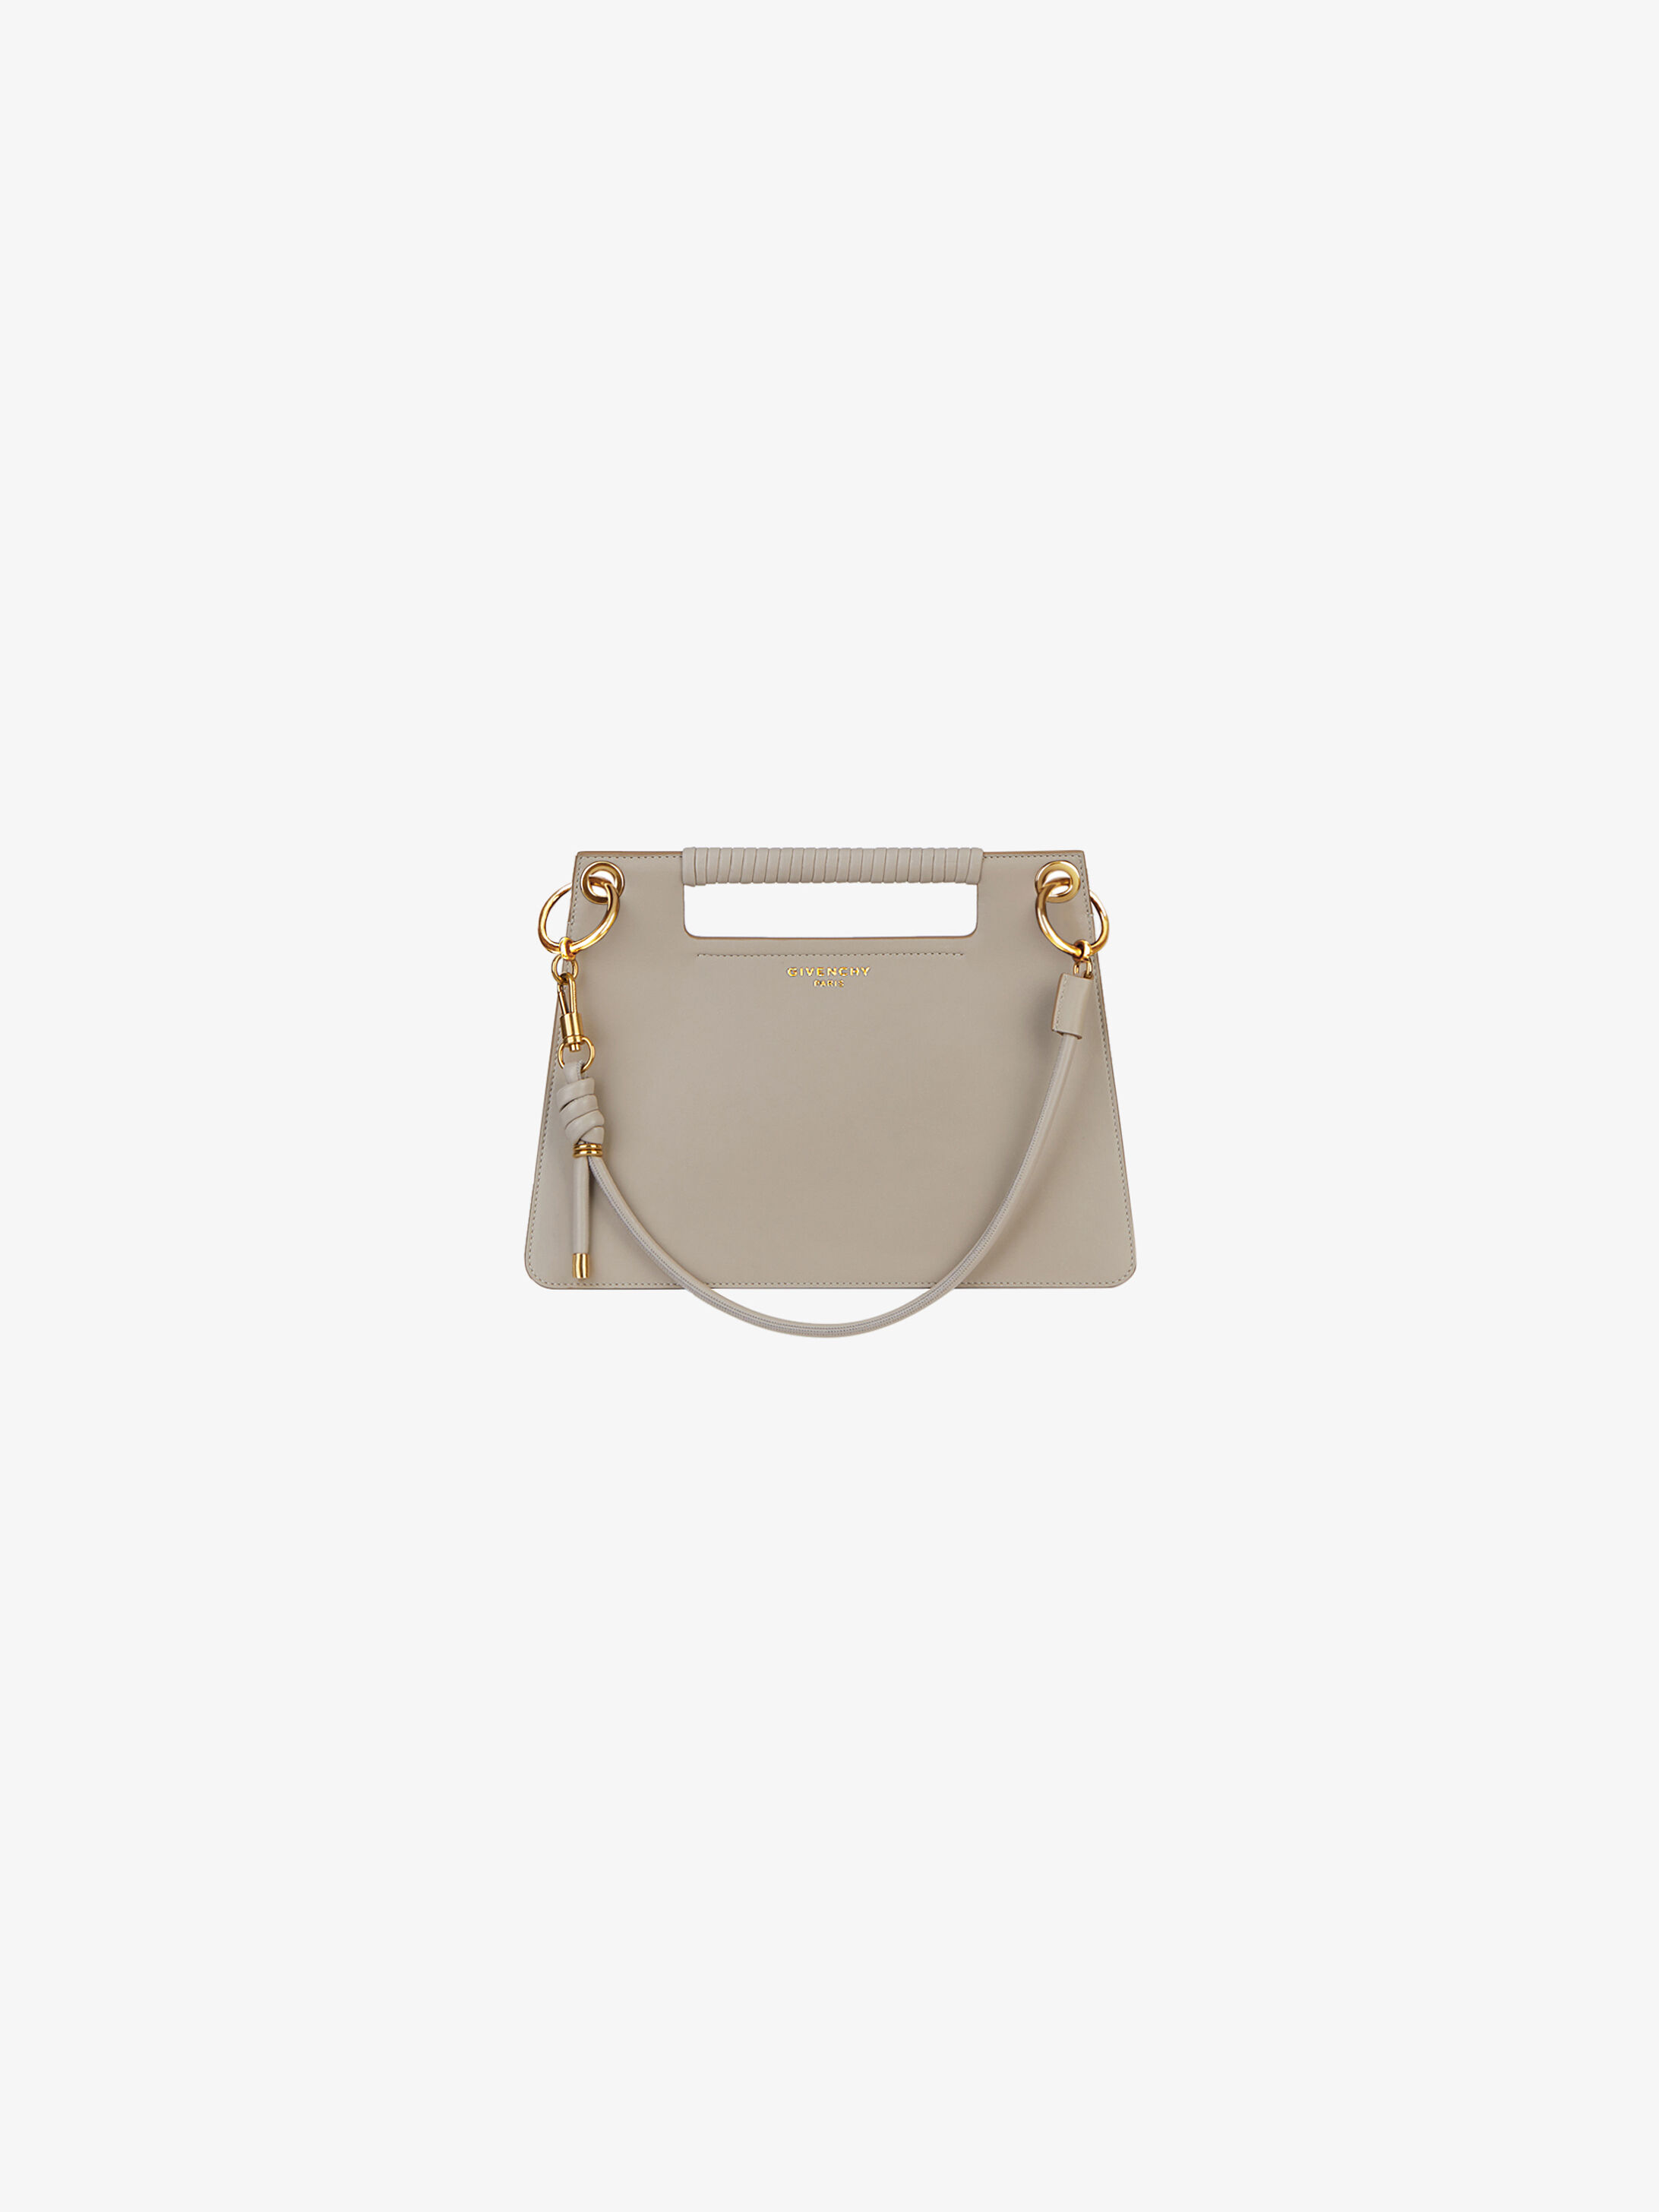 bbbc7dafc448 Women s Handbags collection by Givenchy.